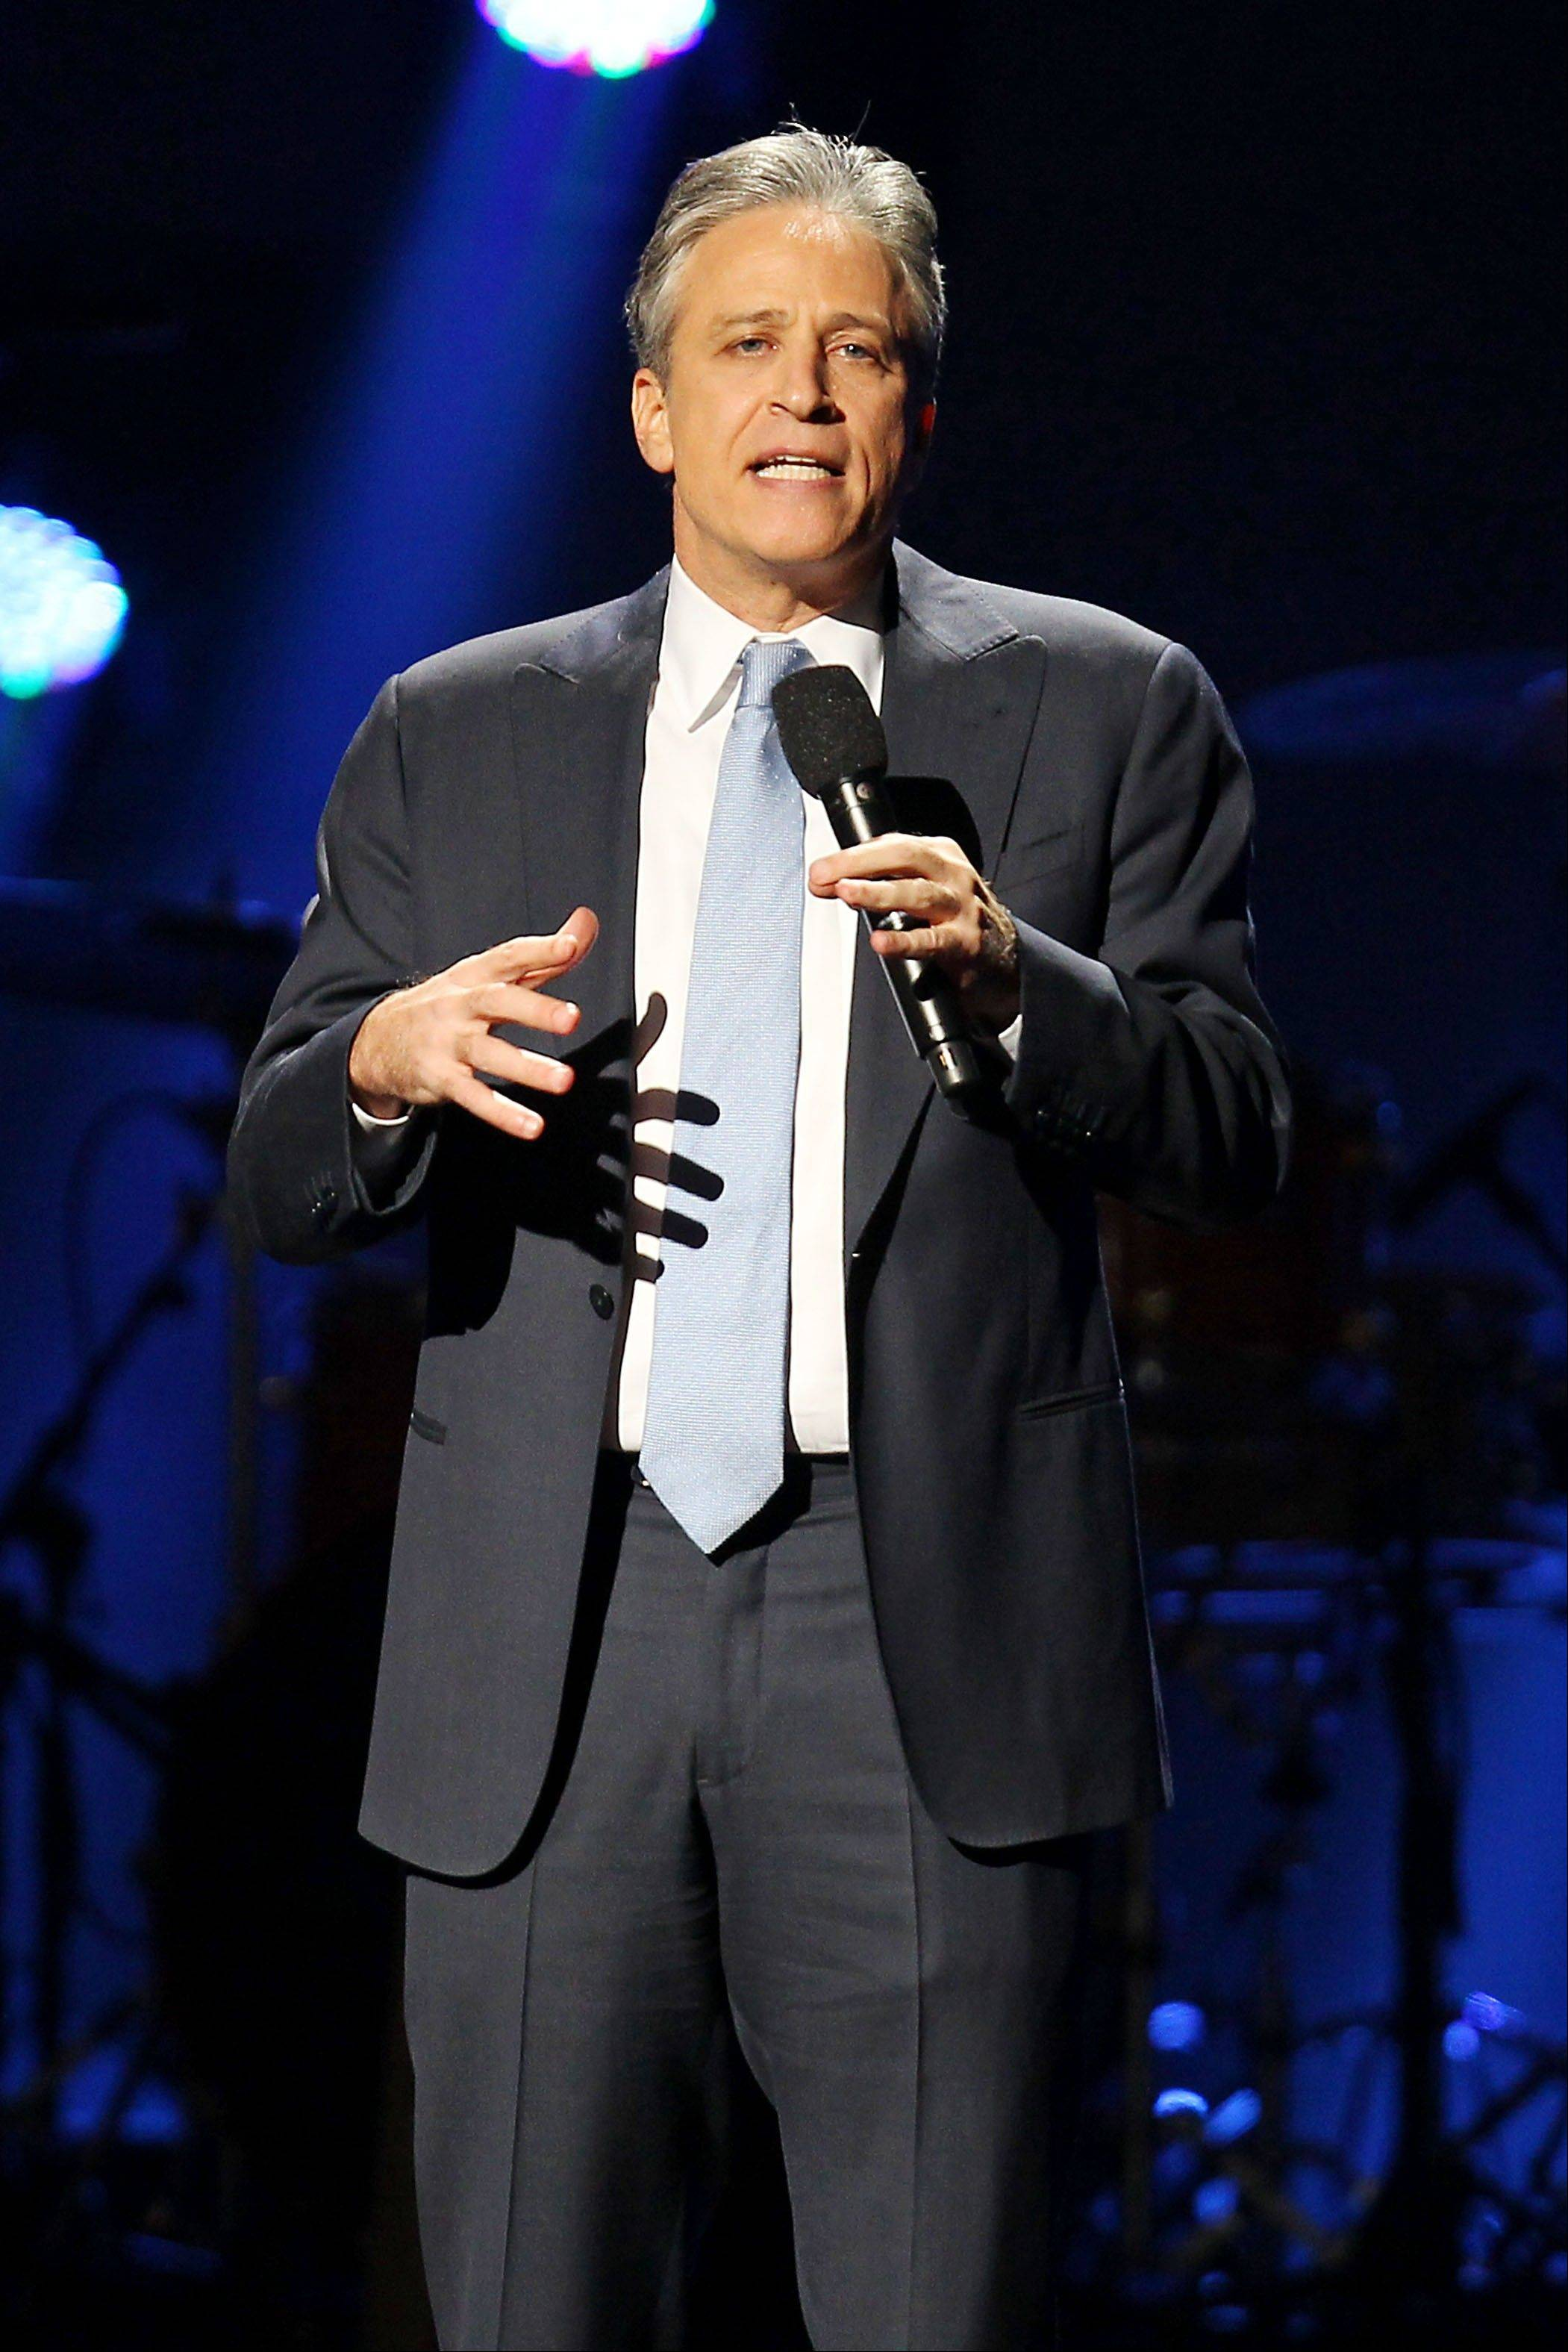 Jon Stewart at the 12-12-12 The Concert for Sandy Relief at Madison Square Garden in New York.